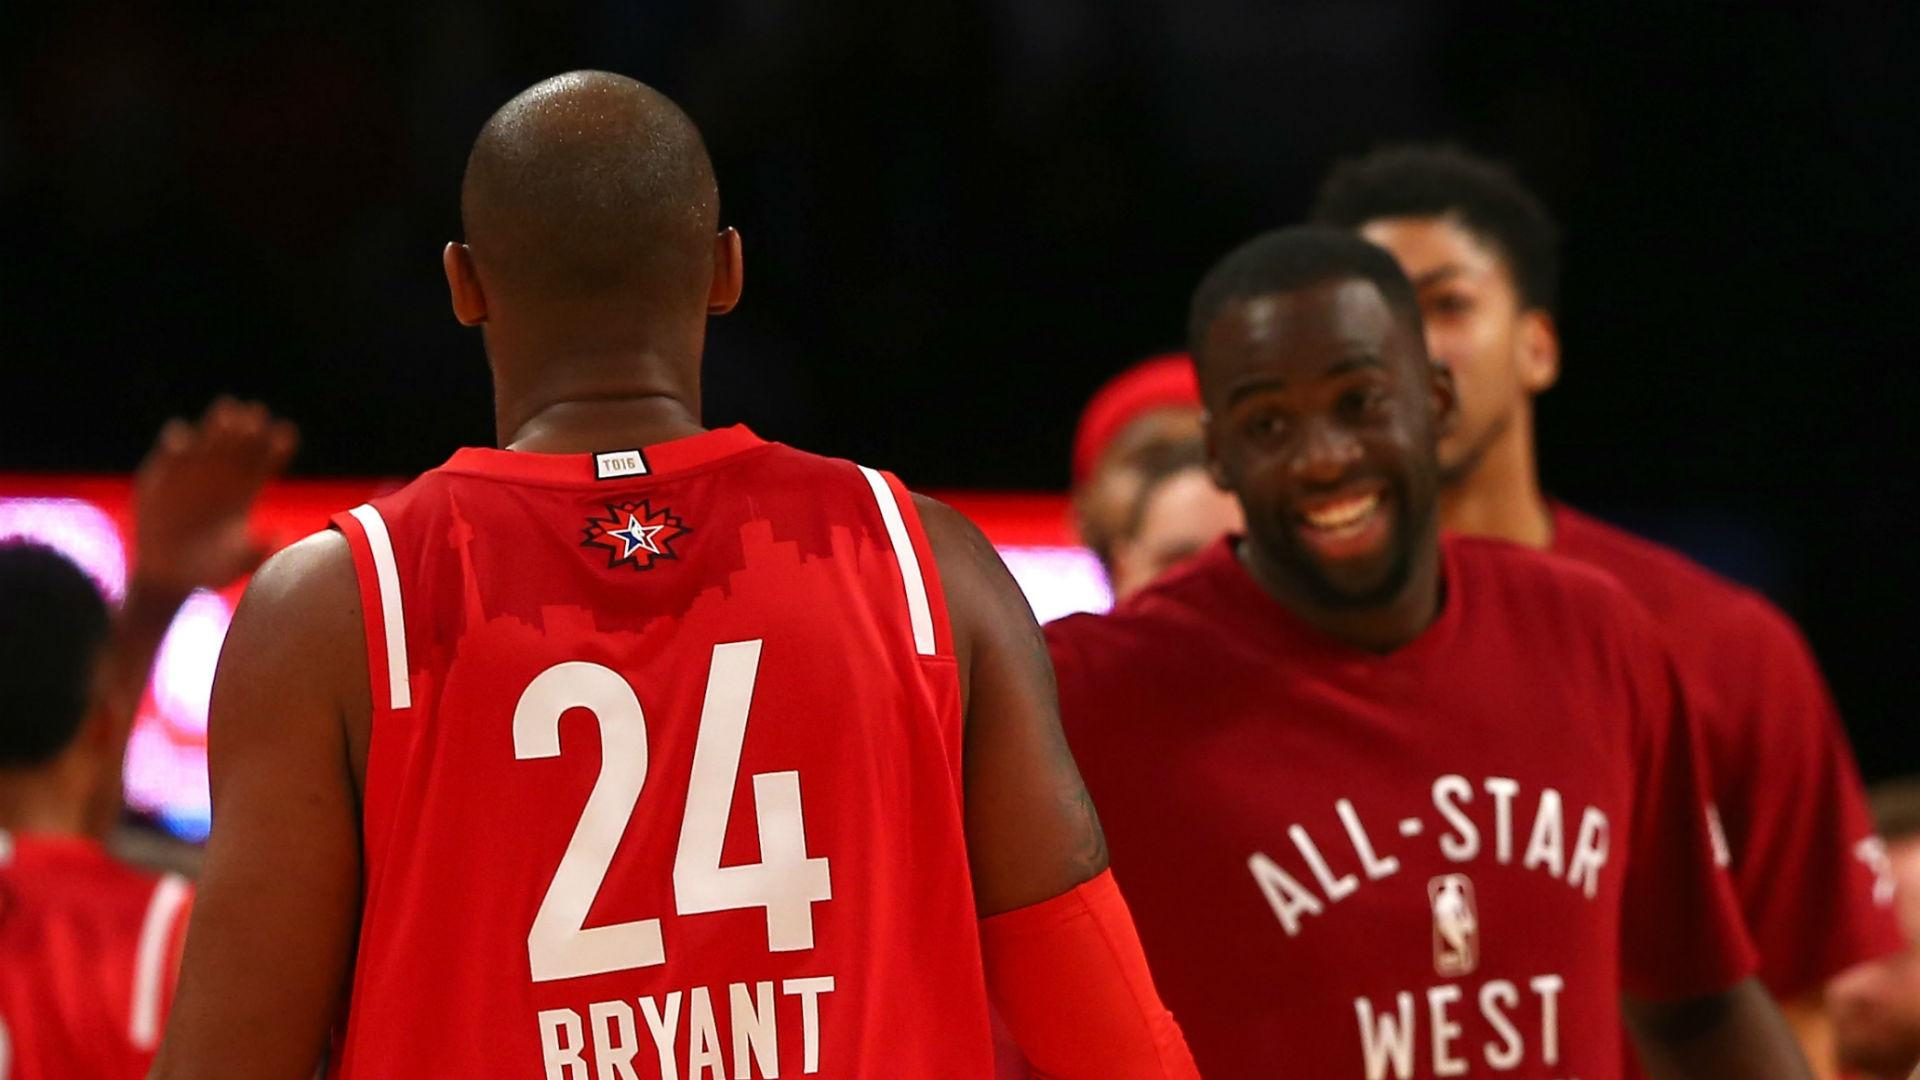 Kobe Bryant reaches out to Draymond Green after Game 4 loss